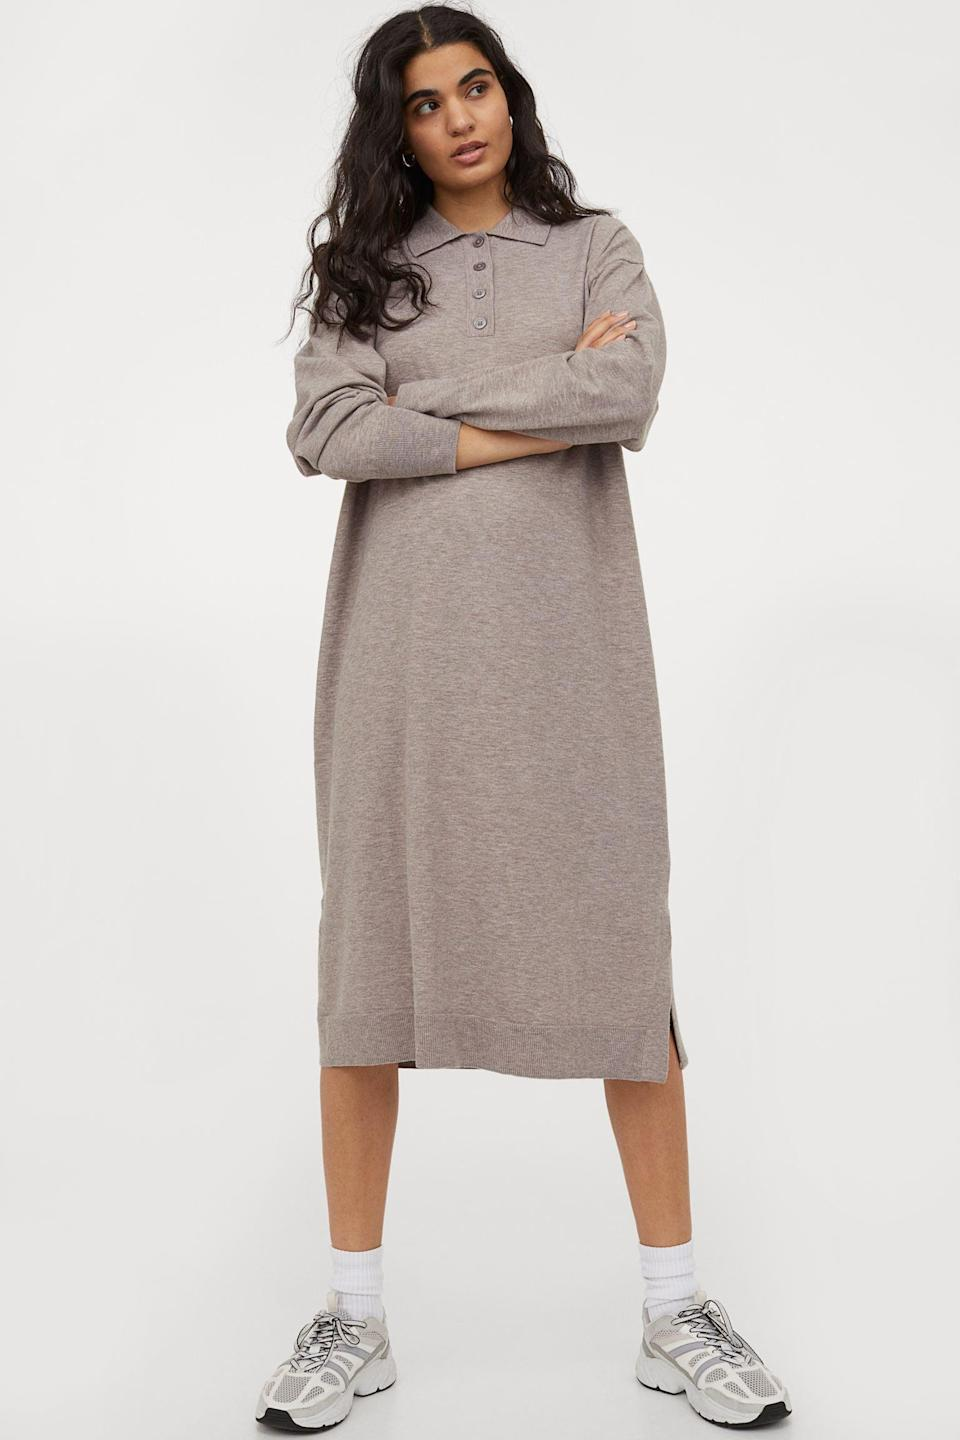 <p>Last-minute errands to run? The <span>Knit Collared Dress</span> ($24, originally $30) has got you covered.</p>